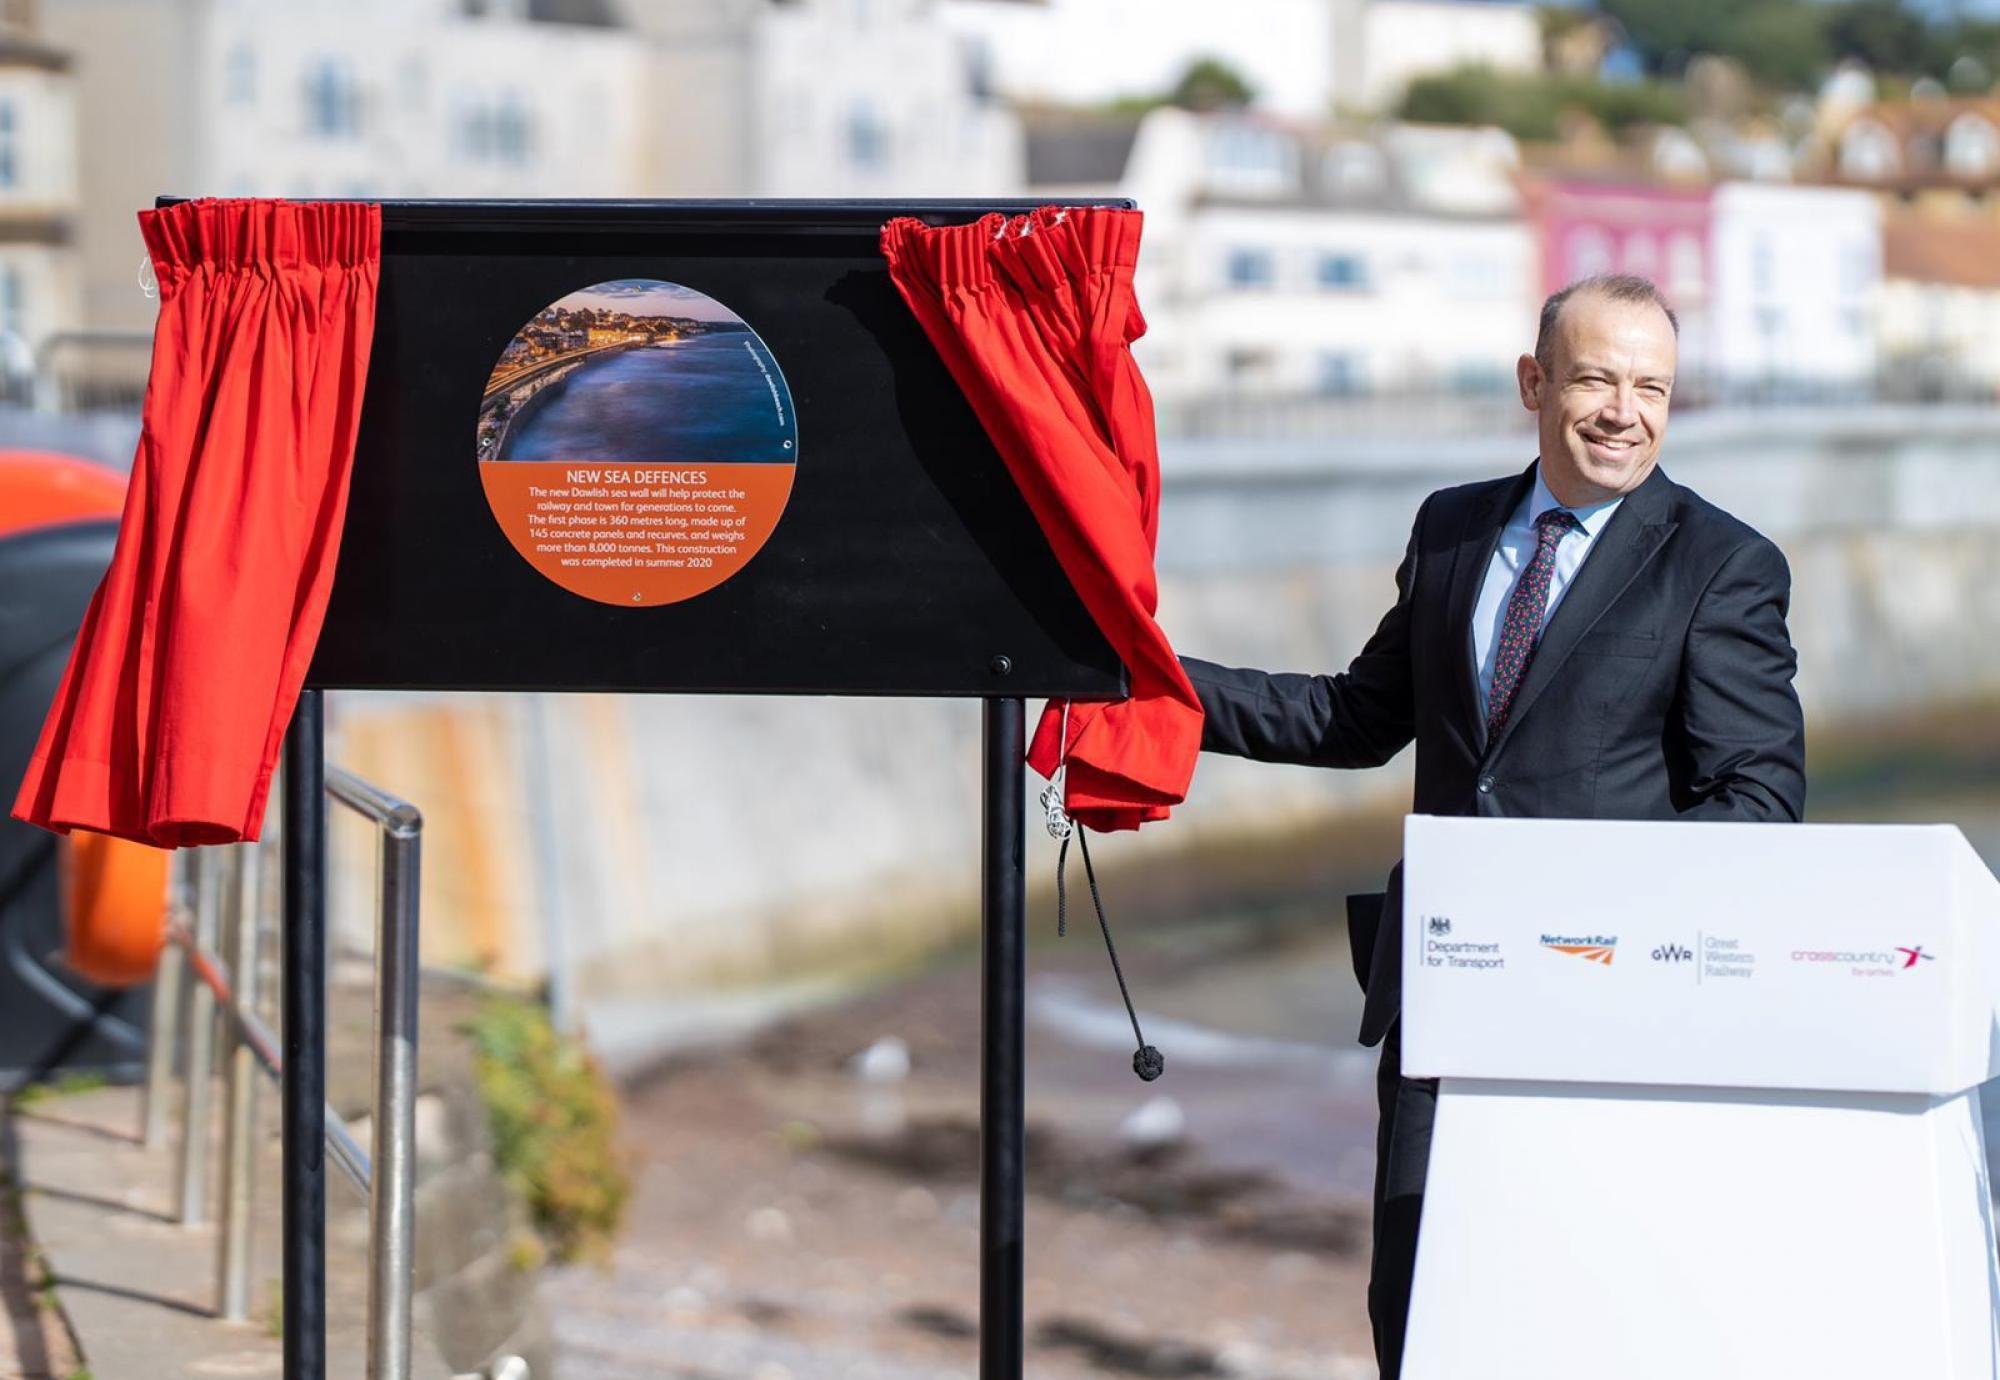 Rail Minister opens first phase of Dawlish seawall